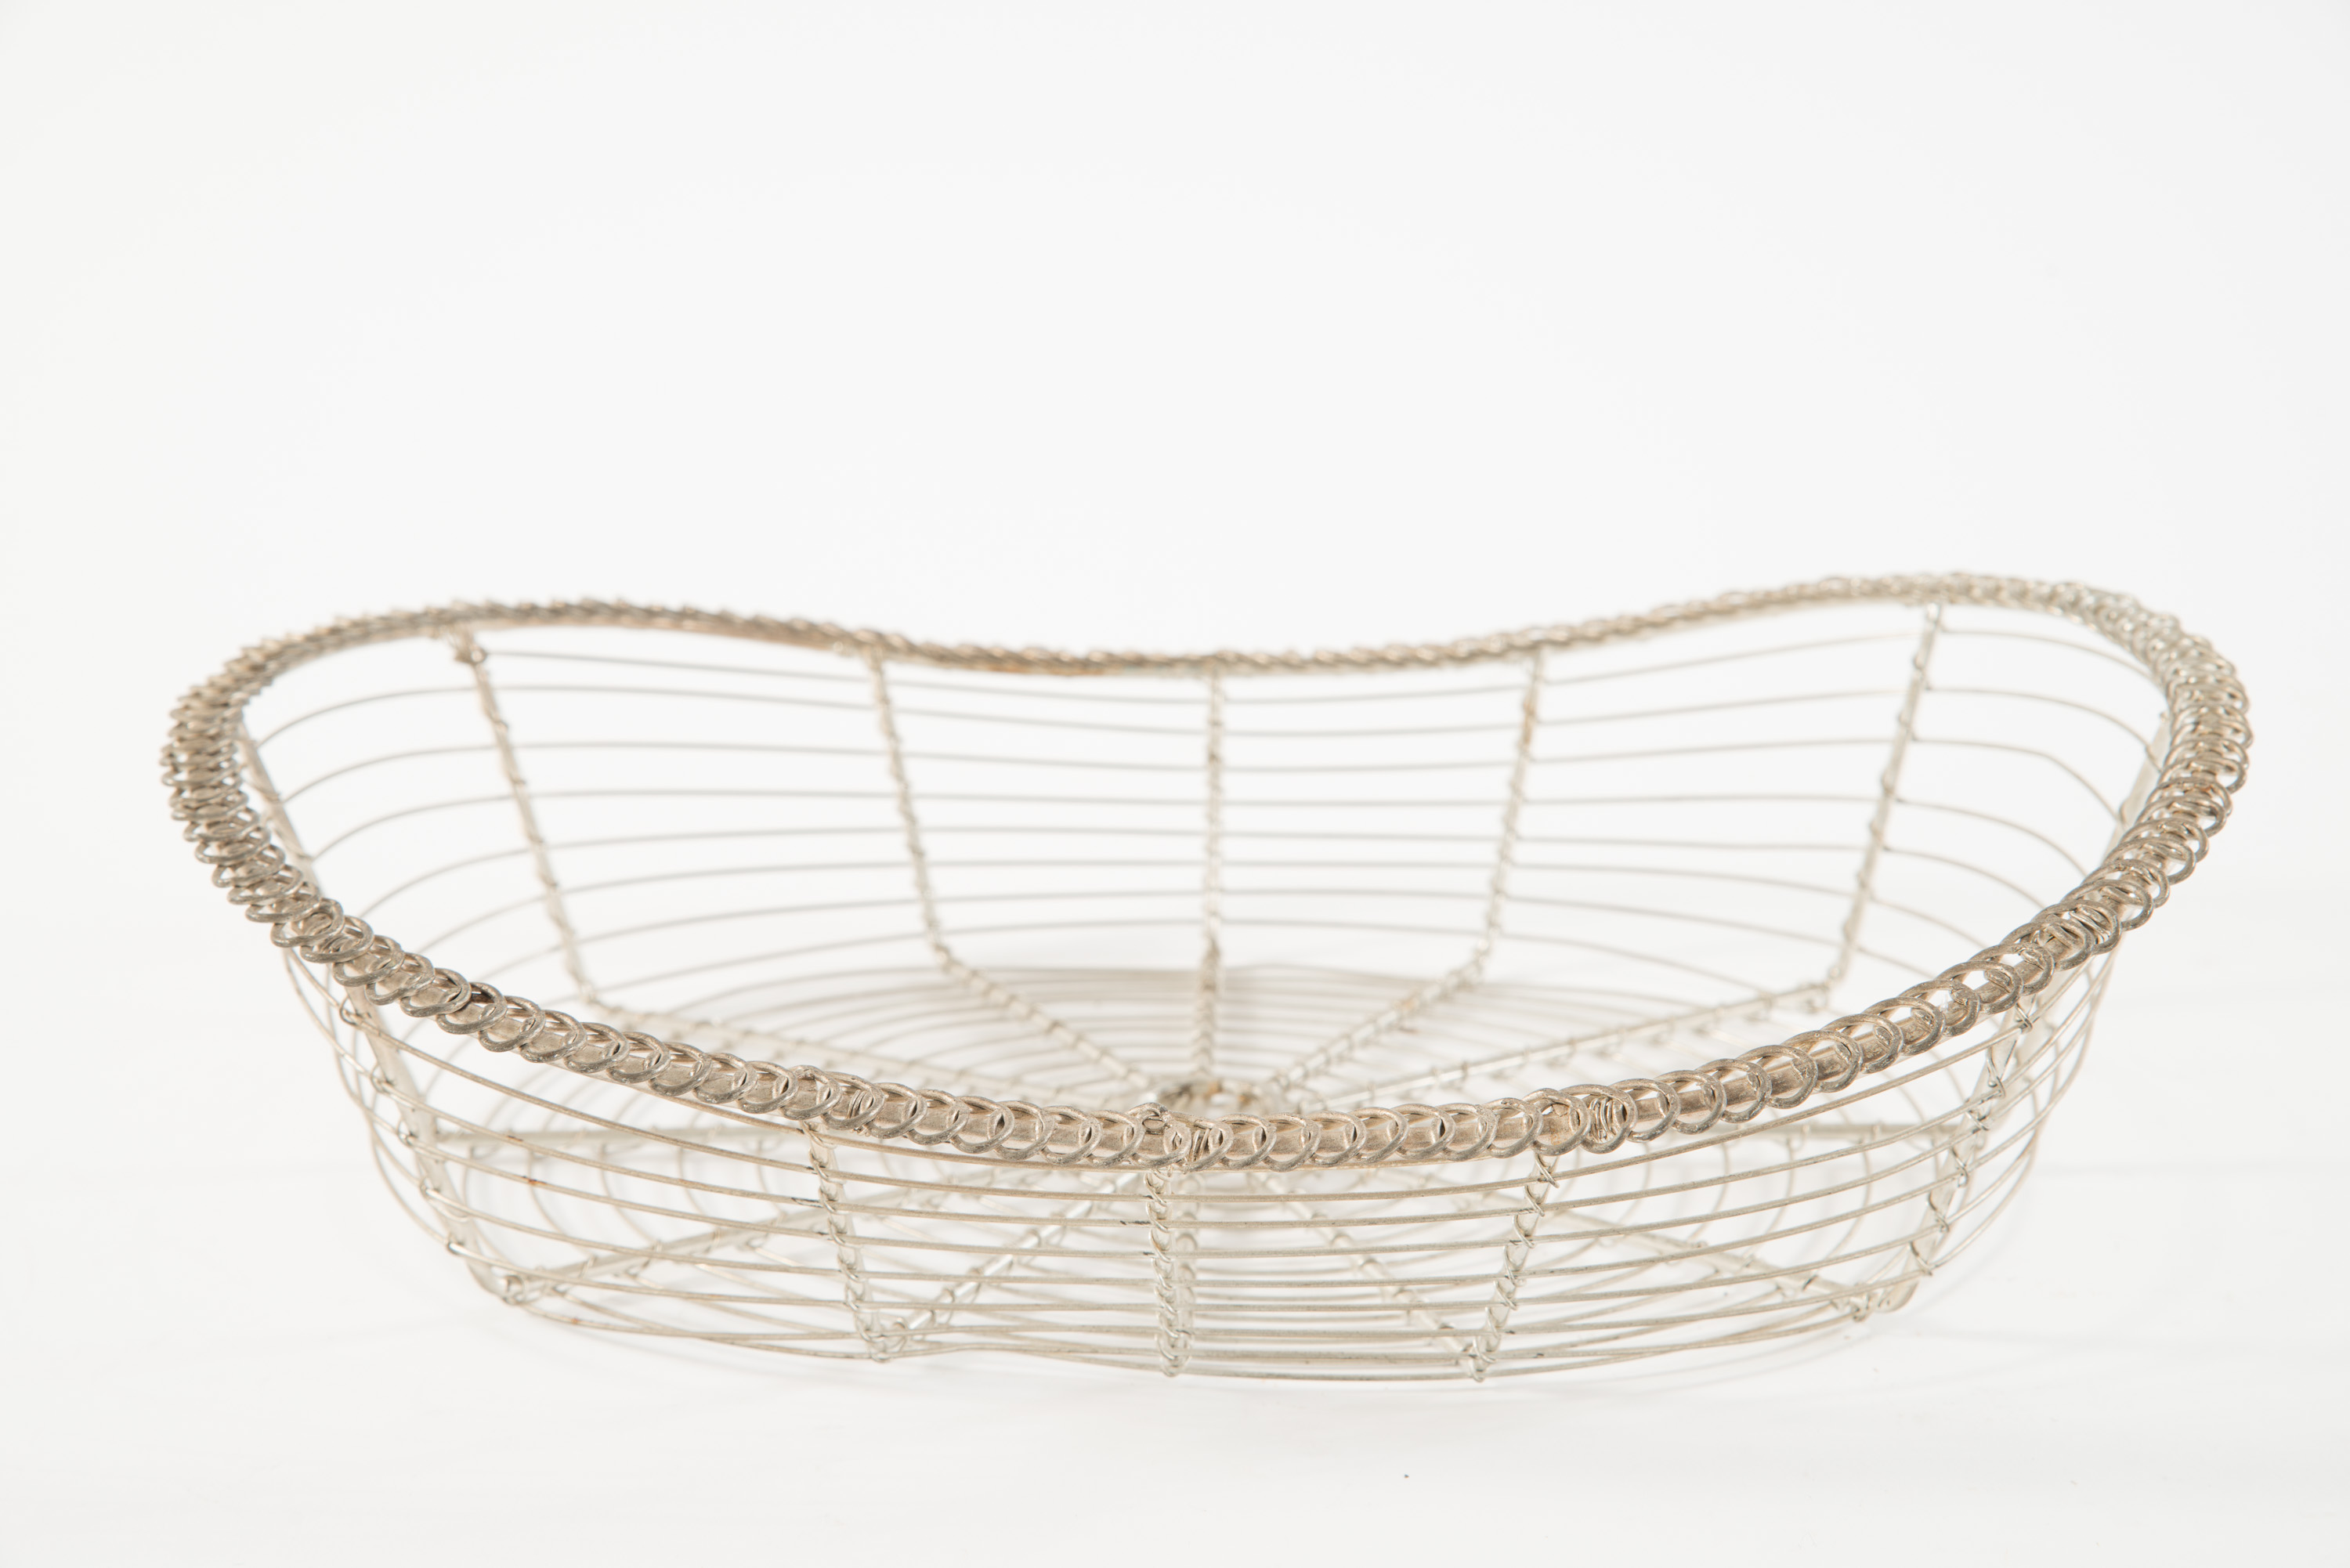 Vintage oval silver-colored wirework bread basket with looped ...